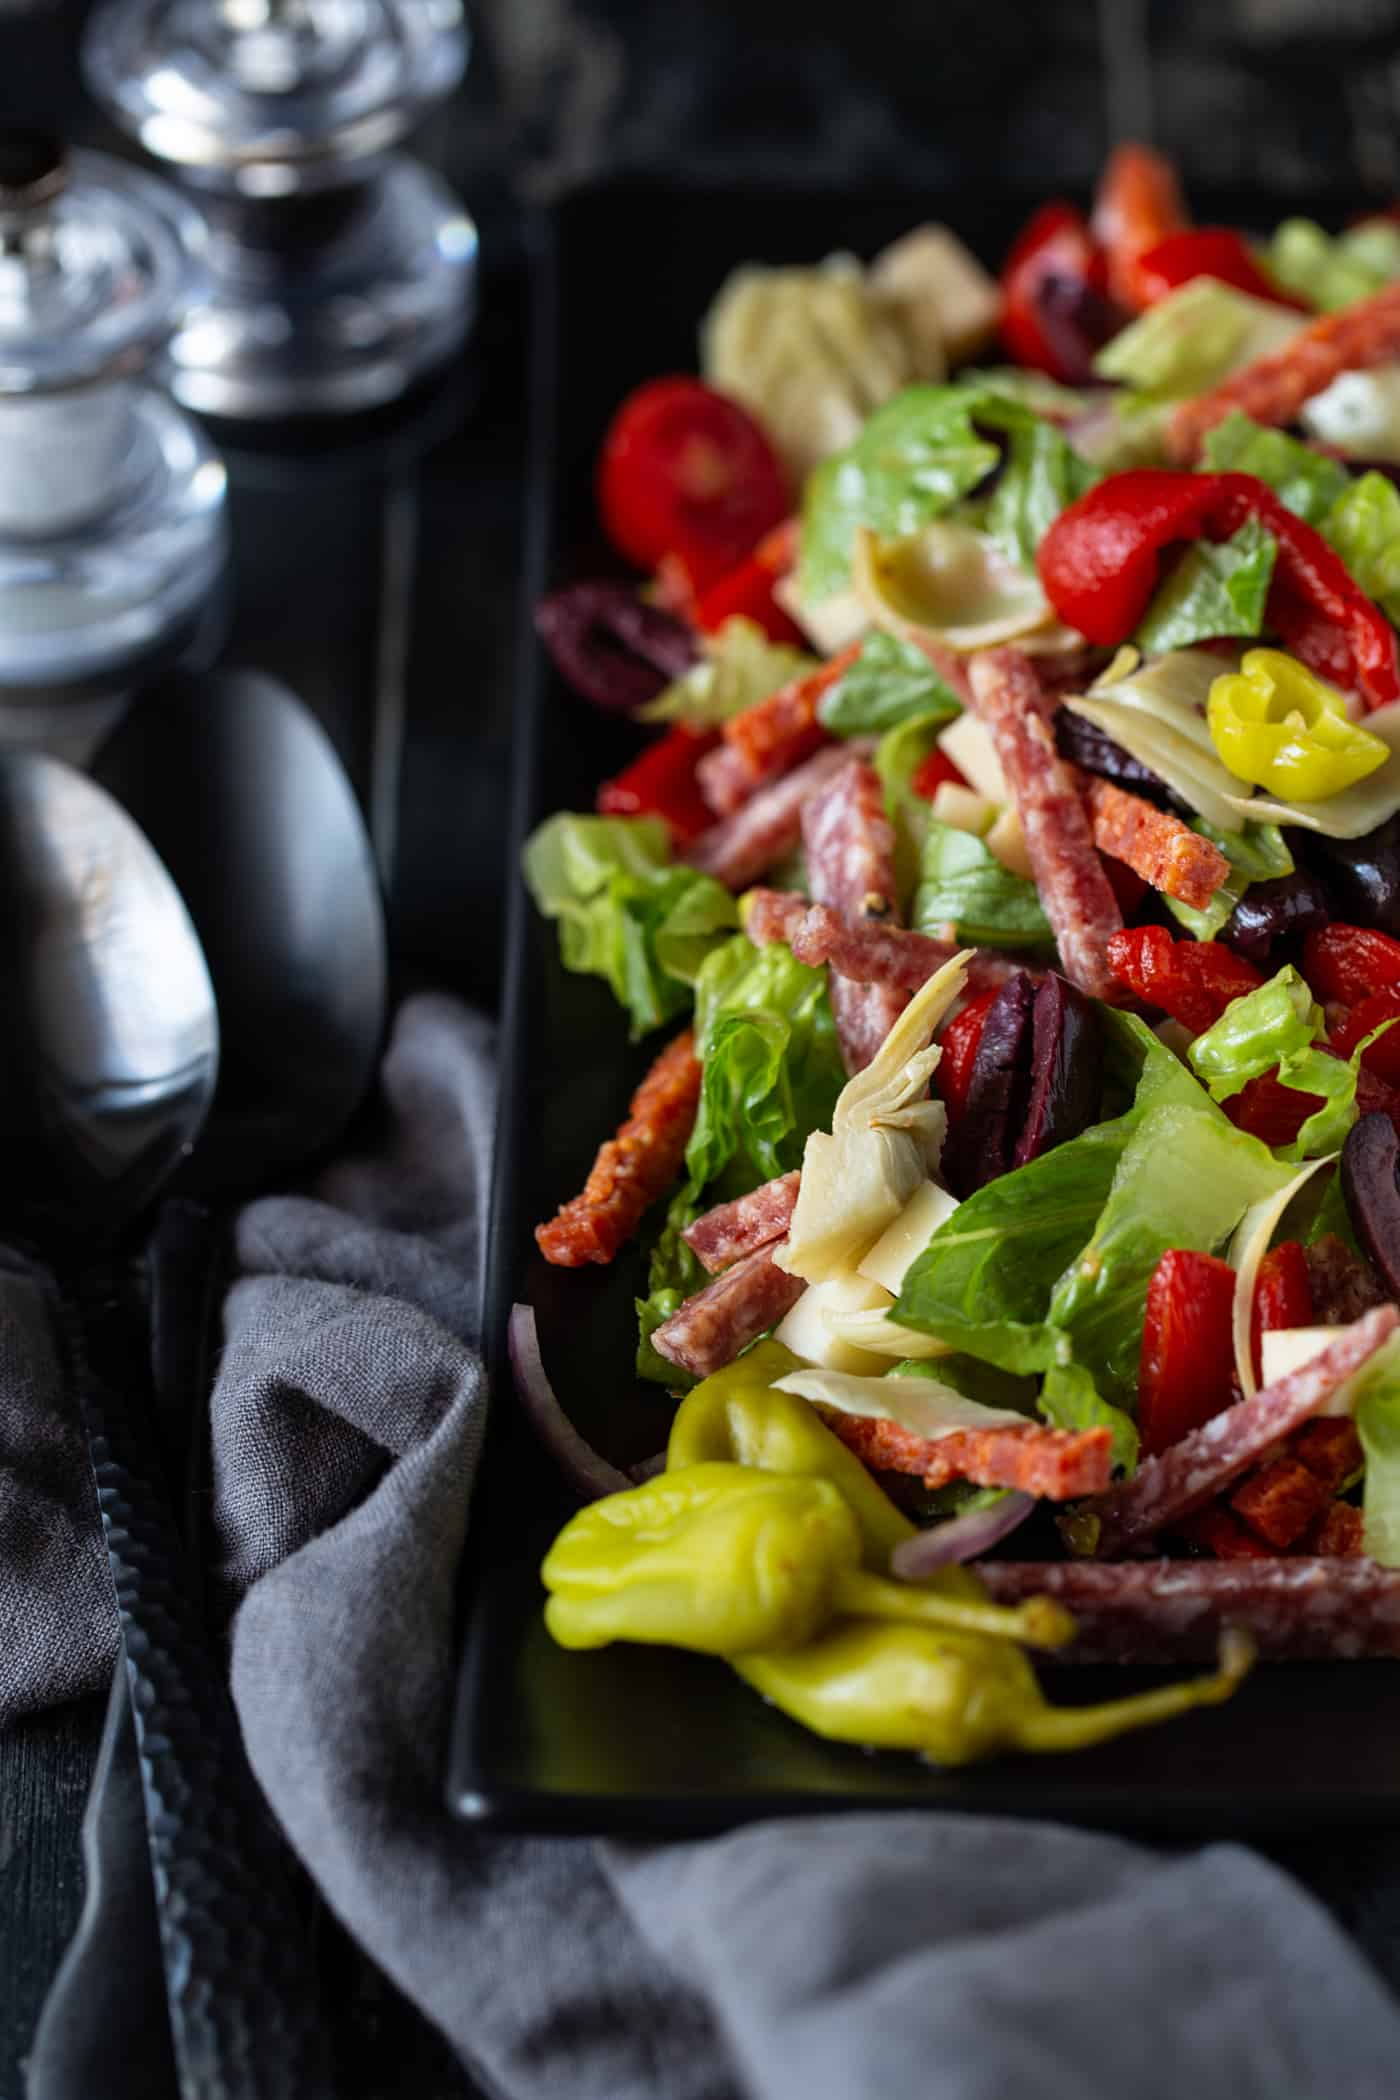 Top down image of a Salad with Red wine vinaigrette on a dark plate with a spoon for serving.